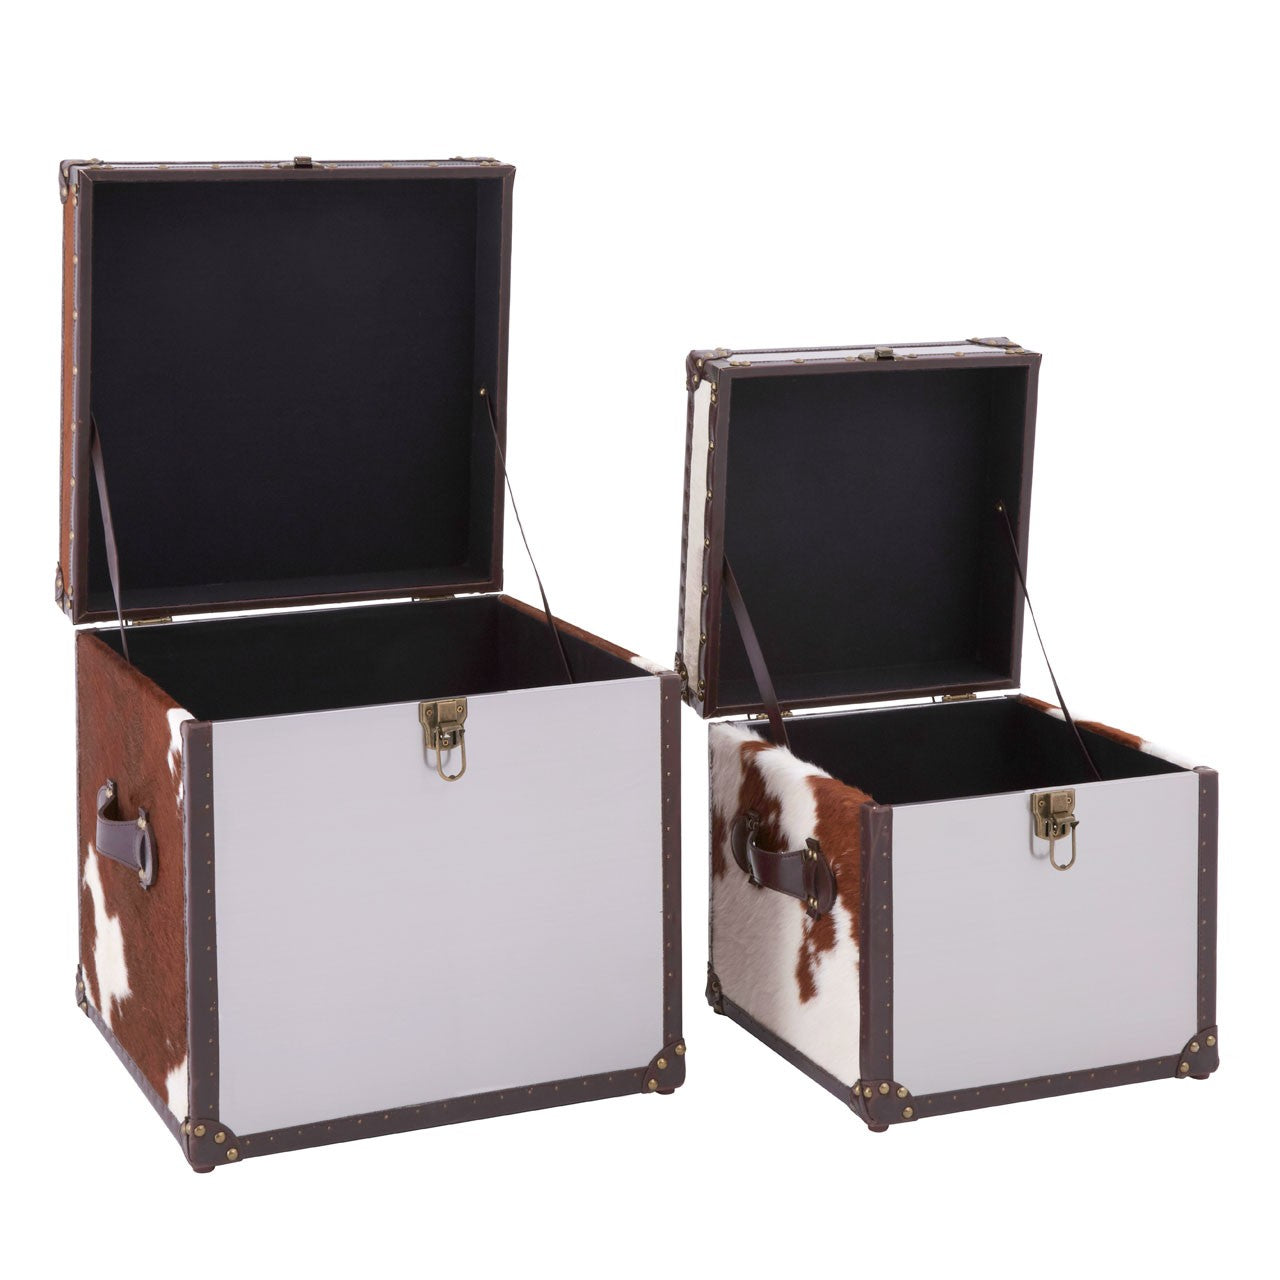 Kensington Townhouse Storage Trunks (Set of 2) Open